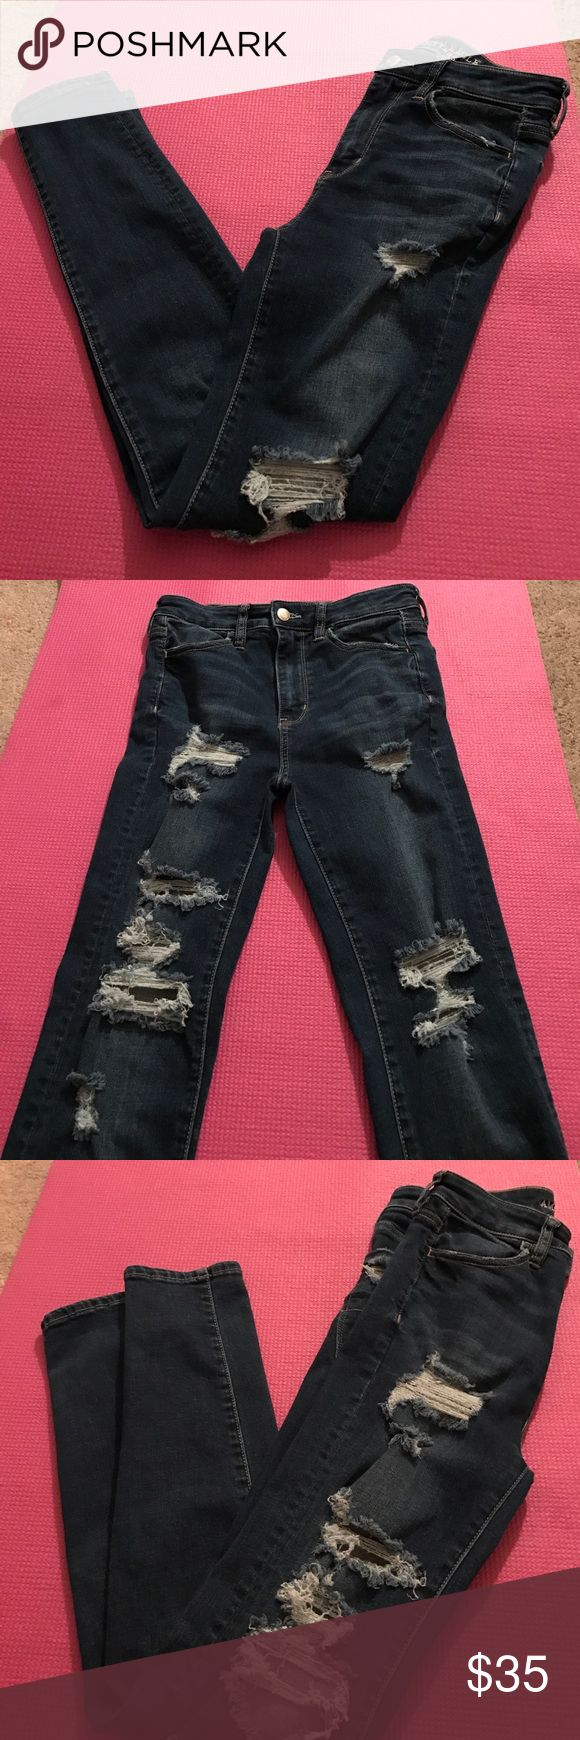 American Eagle SUPER HI RISE JEGGING This pair doesn't exist in stores yet, it was a TEST for only certain stores. Worn 2-3 times and washed, so perfect condition! American Eagle Outfitters Jeans